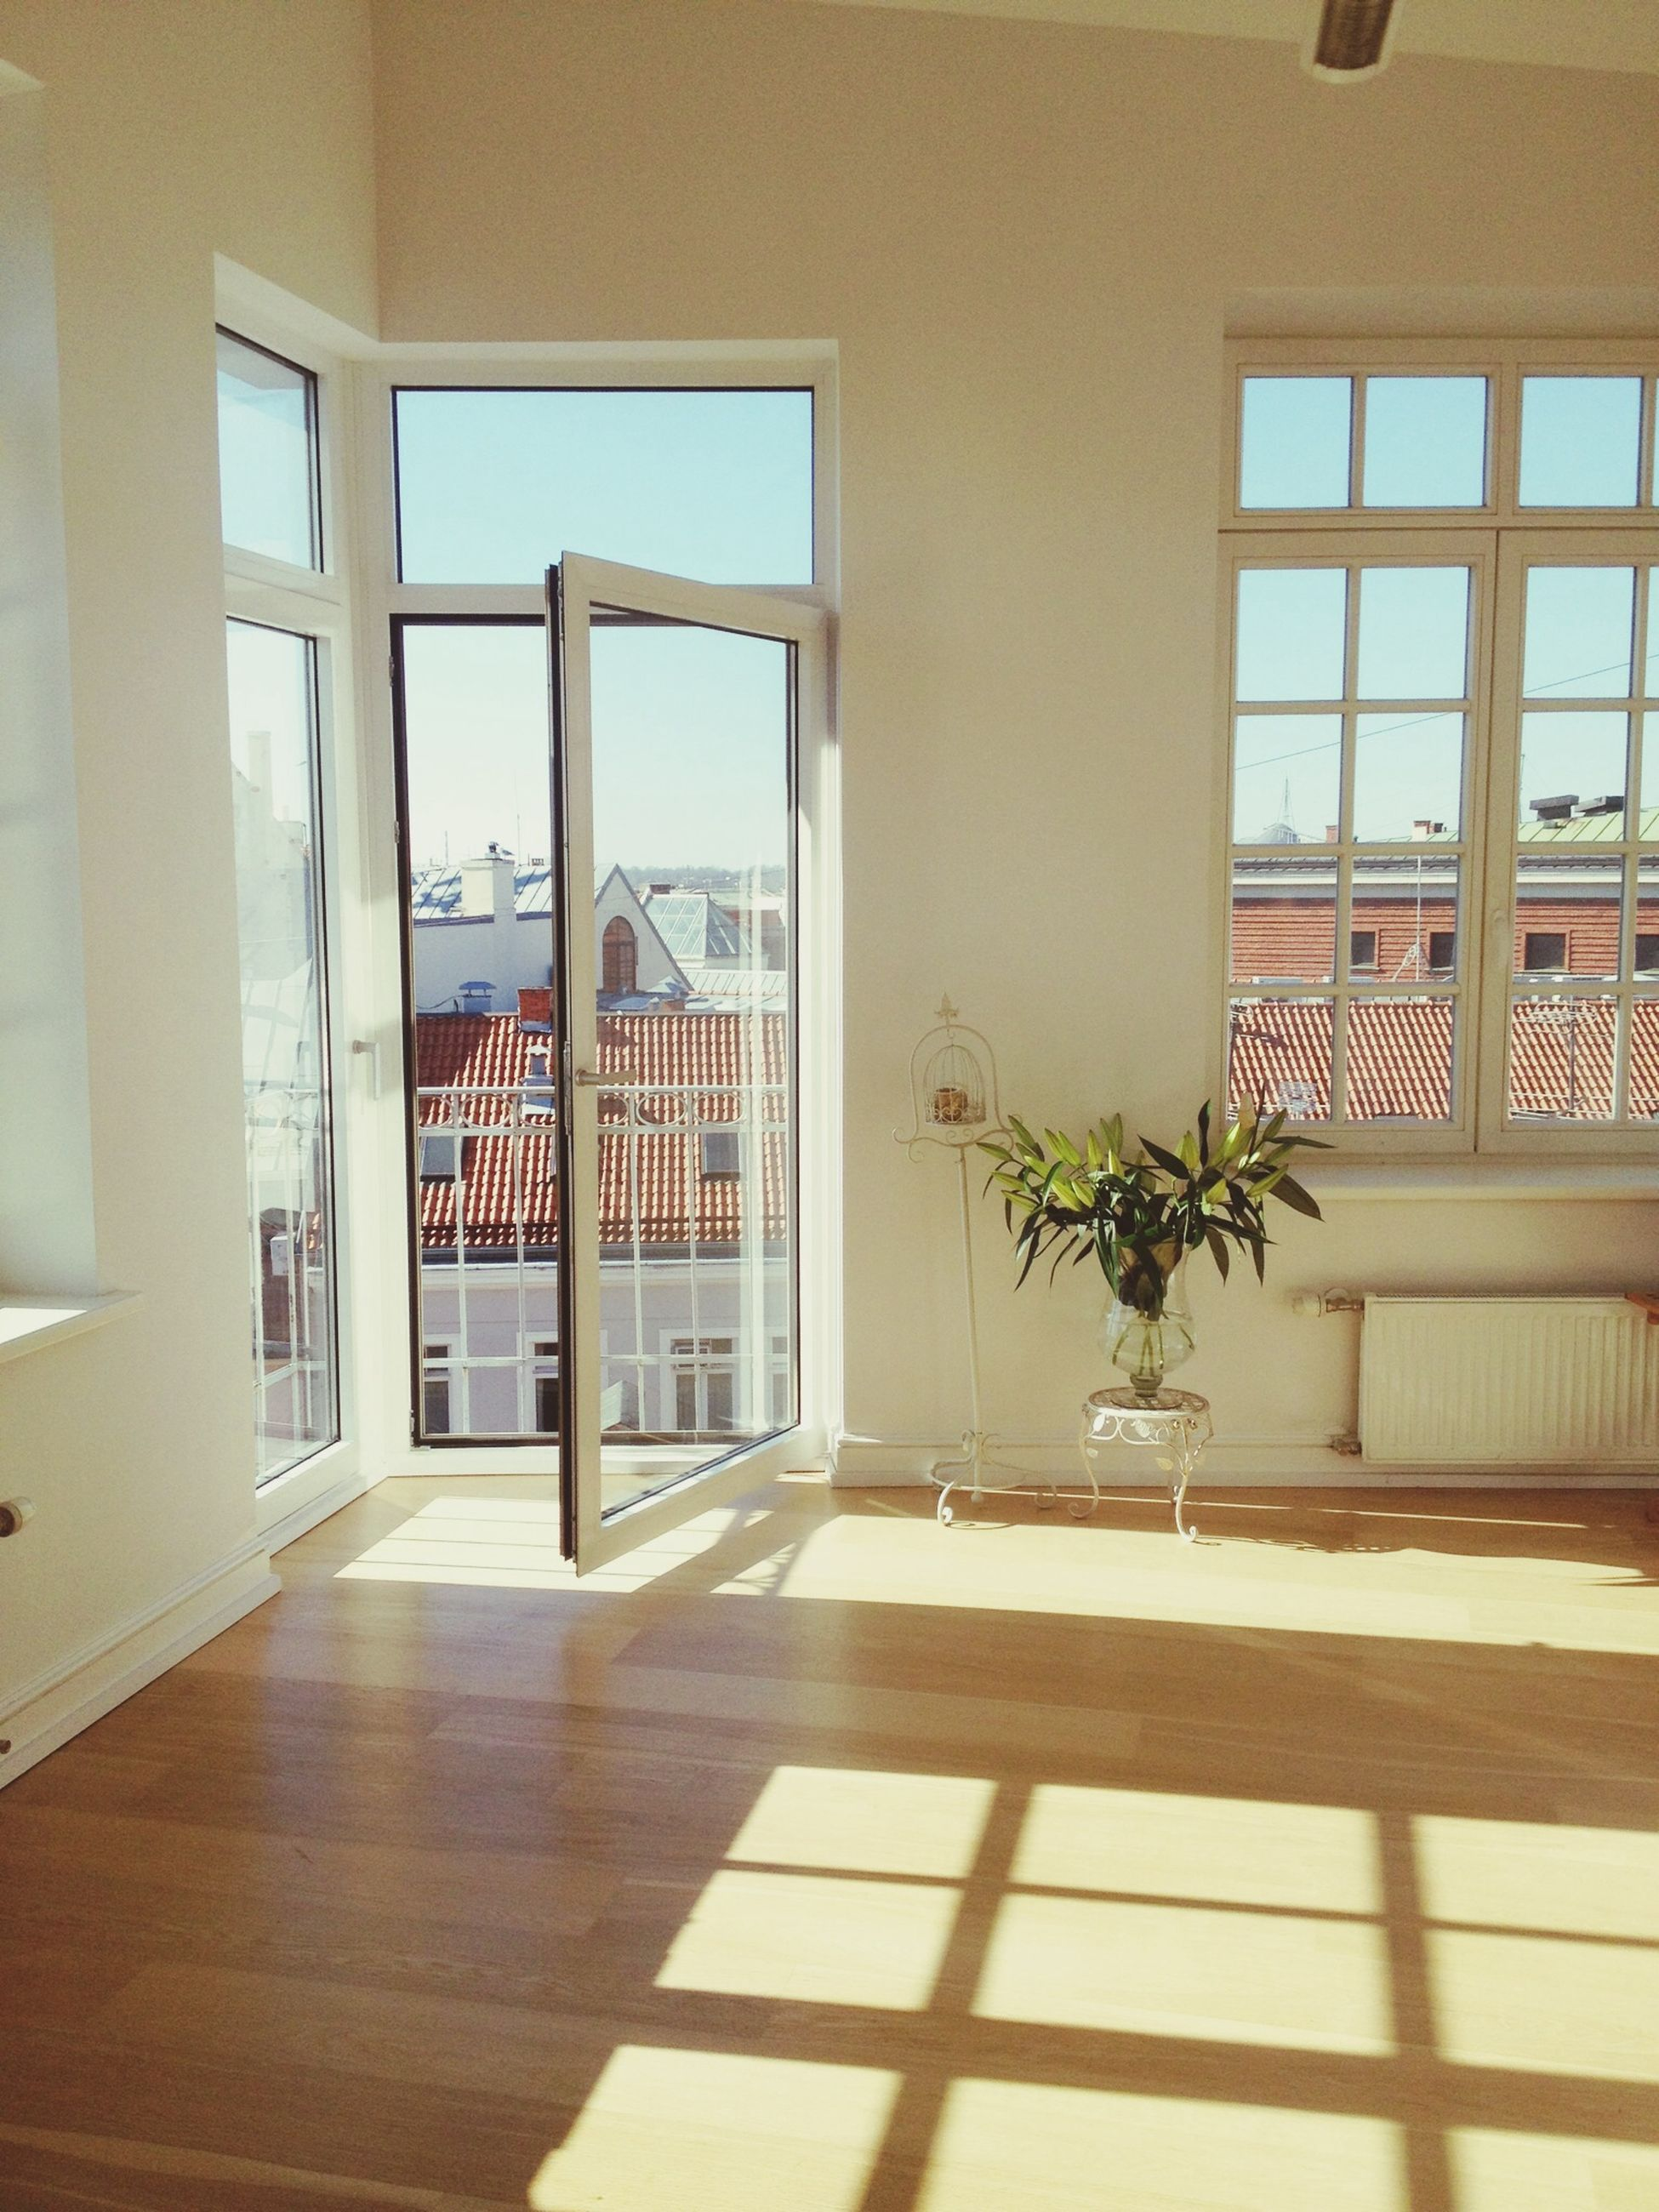 indoors, window, architecture, built structure, glass - material, potted plant, house, flooring, home interior, door, tiled floor, empty, absence, transparent, sunlight, no people, table, day, plant, residential structure